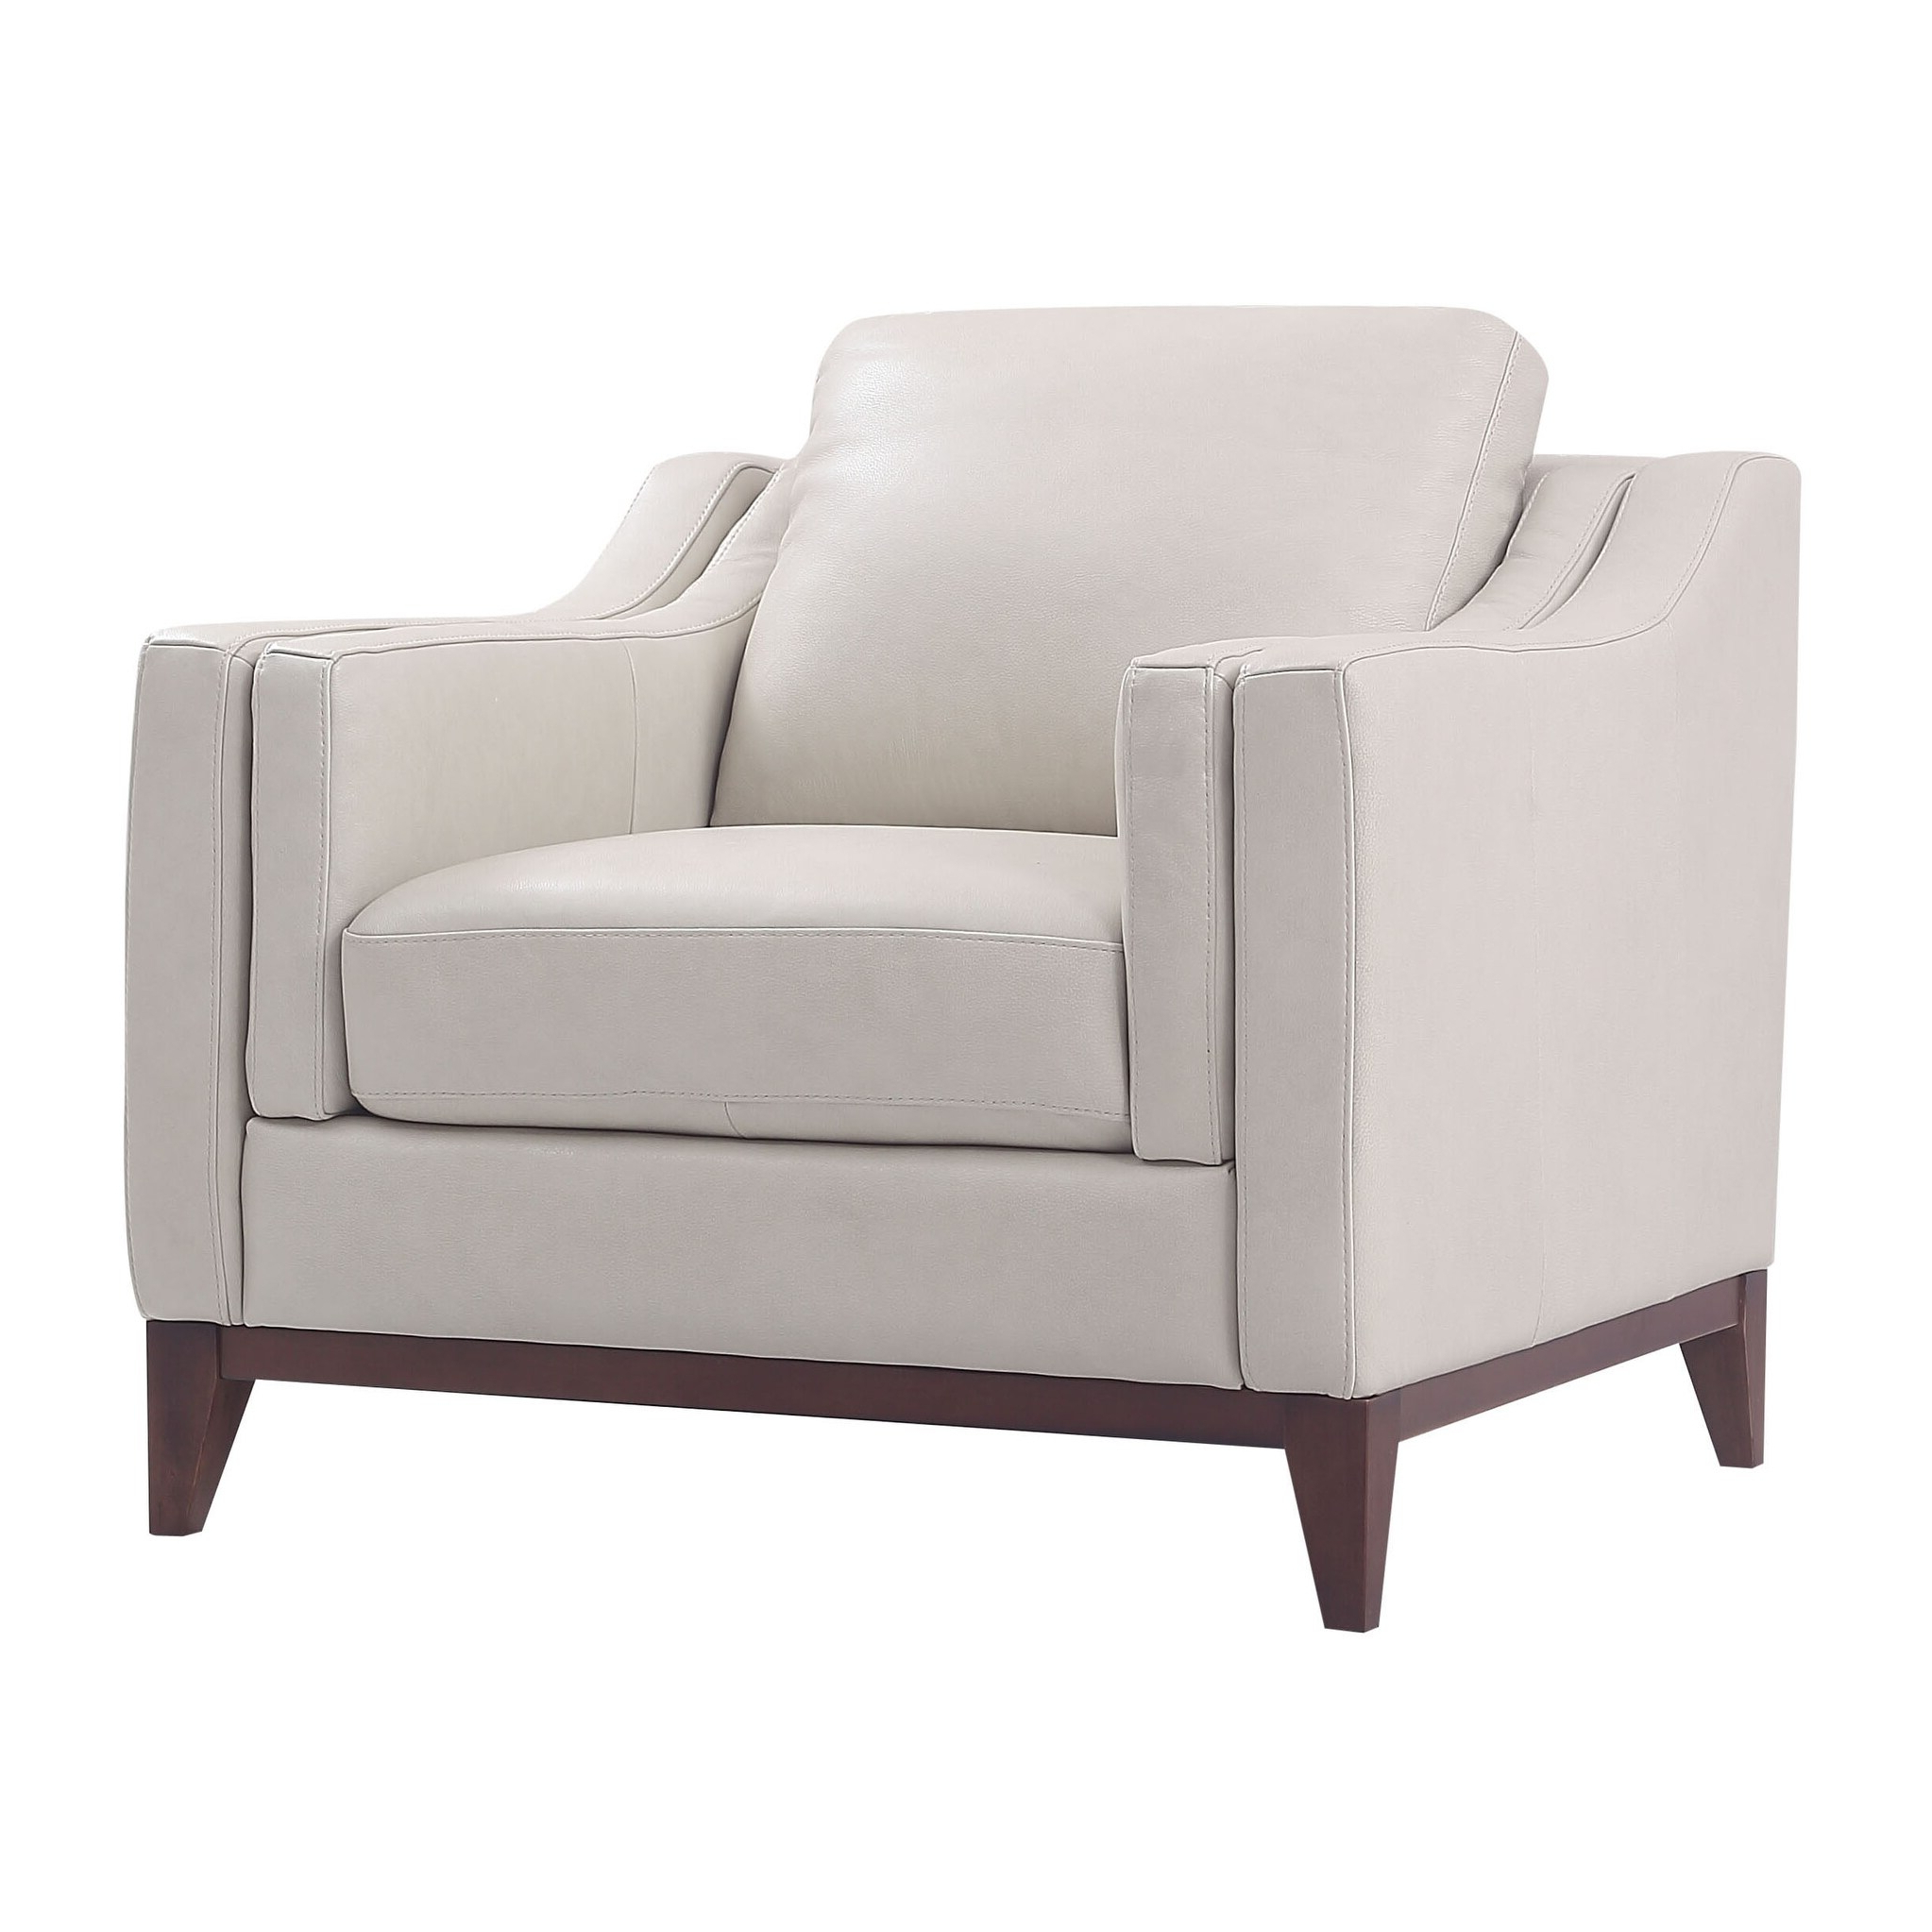 Sheldon Tufted Top Grain Leather Club Chairs Throughout Current Lydia Top Grain Leather Club Chair (View 8 of 20)